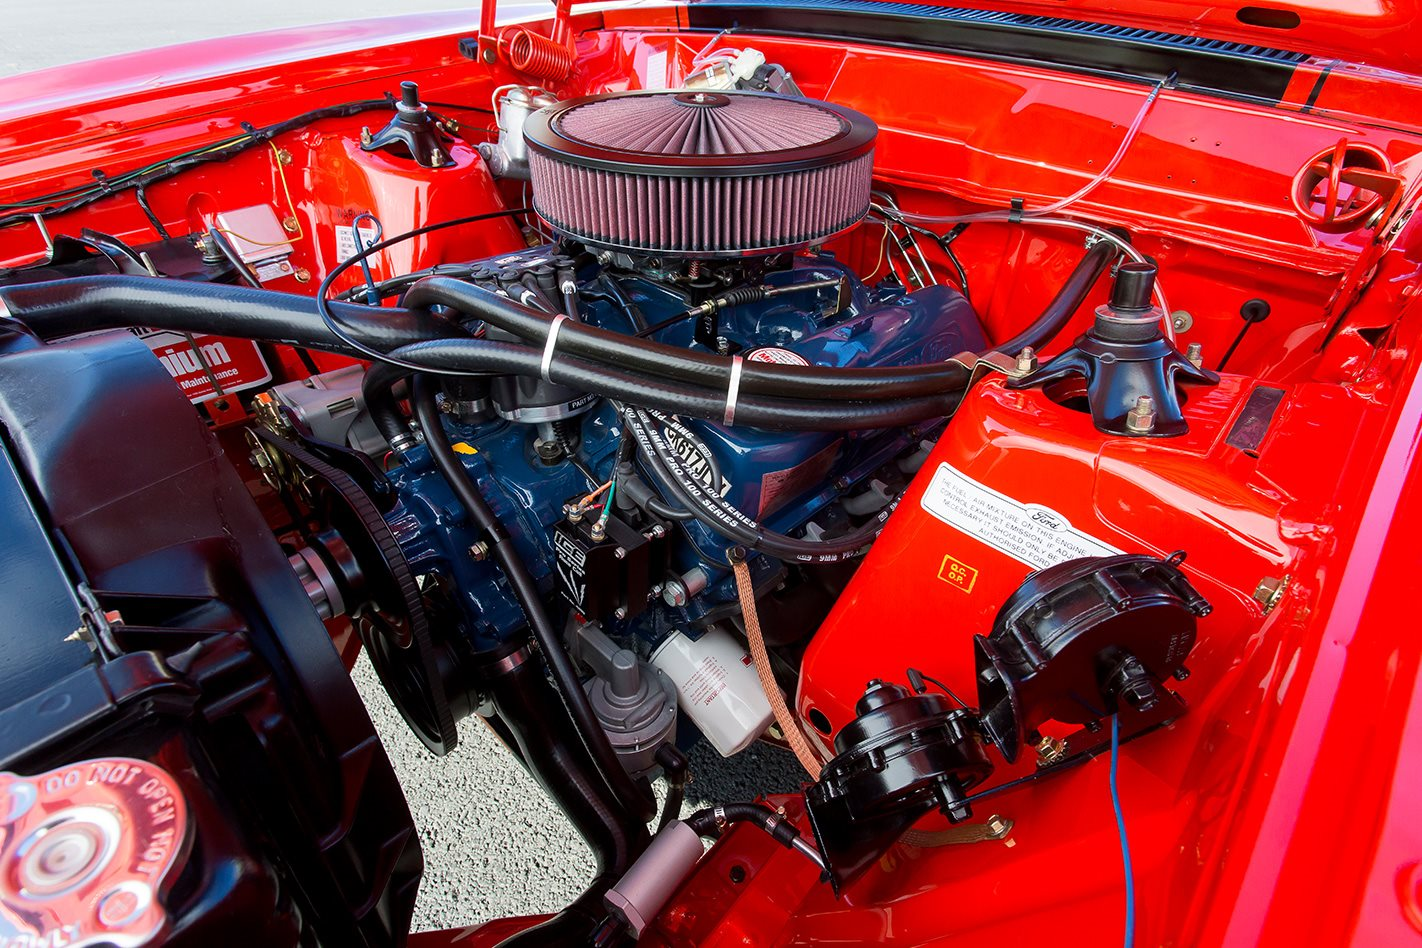 Ford Falcon XB GT hardtop engine bay 2